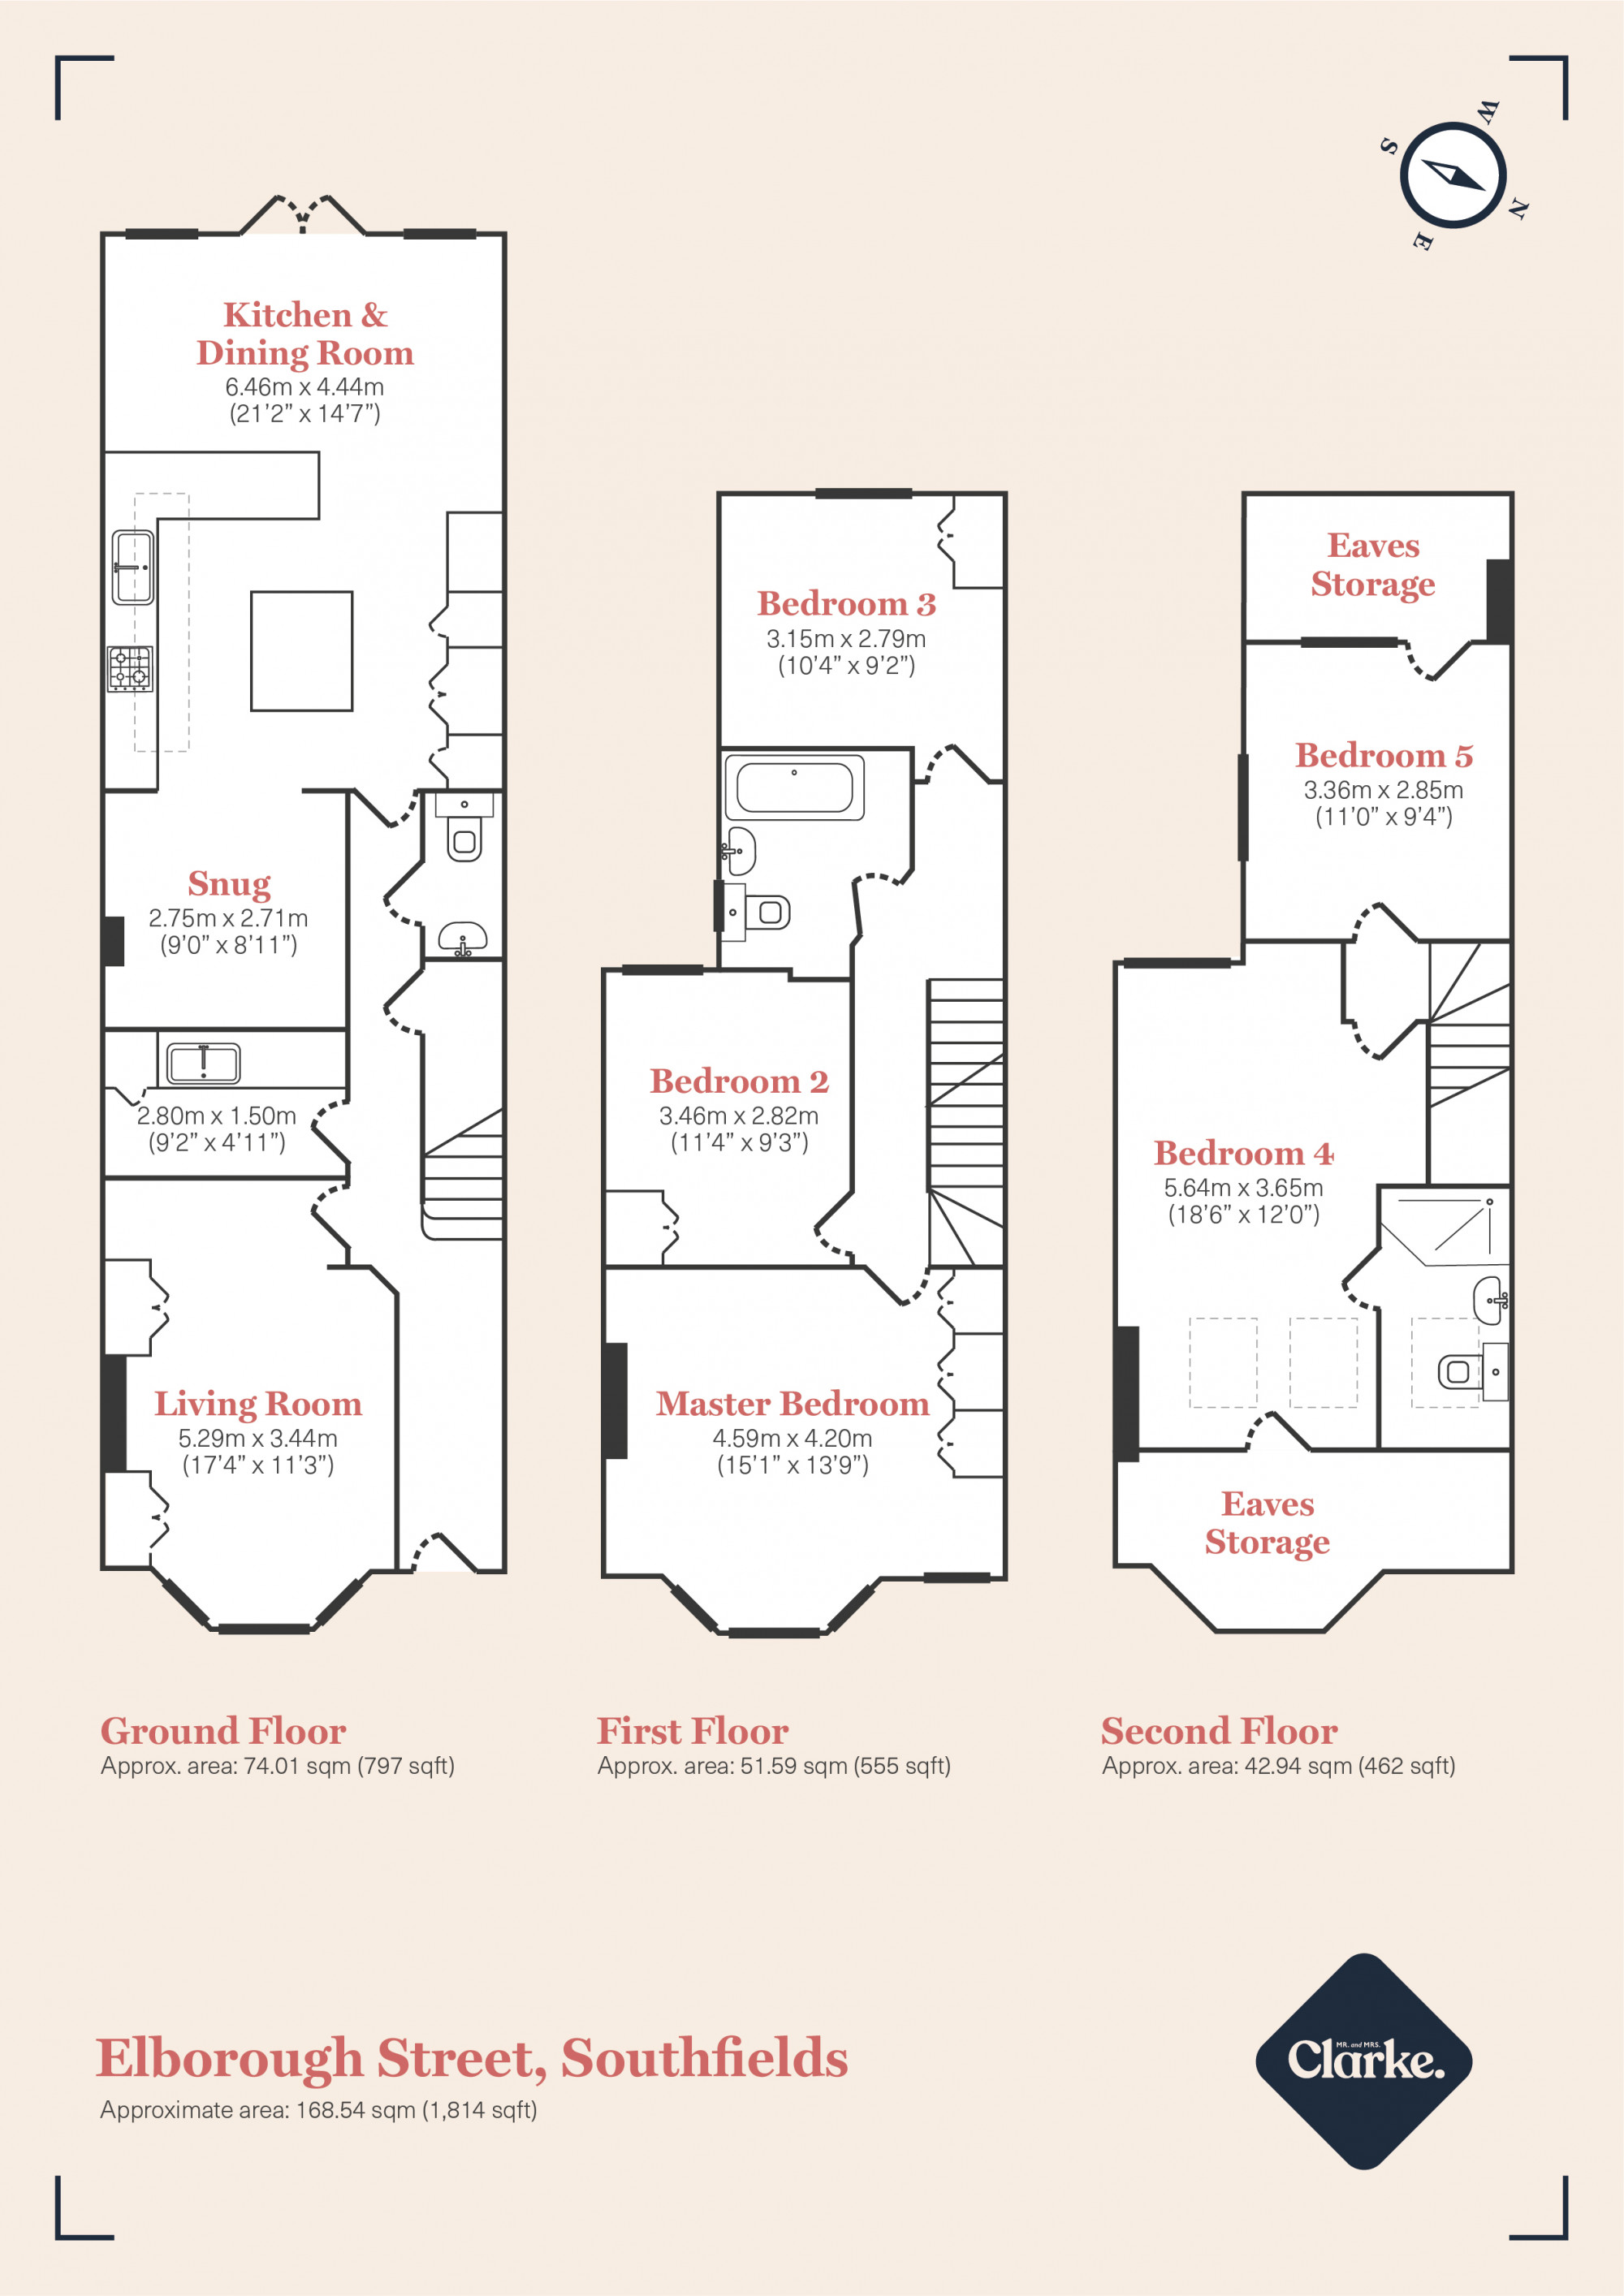 Elborough Street, Southfields. Floorplan.